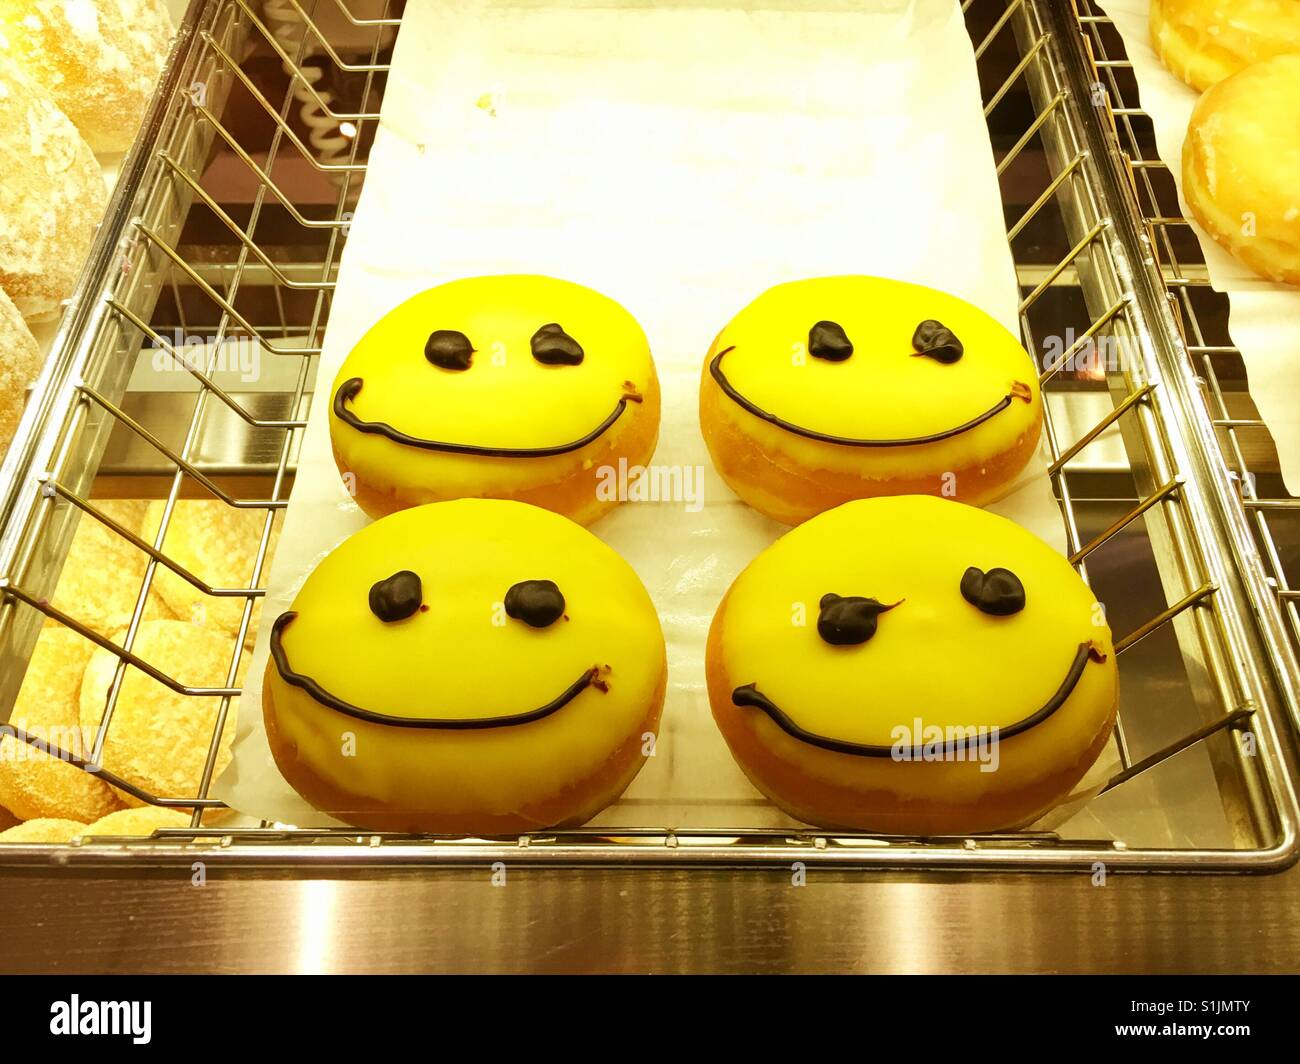 Smiling happy emoji donuts filled with Bavarian cream - Stock Image